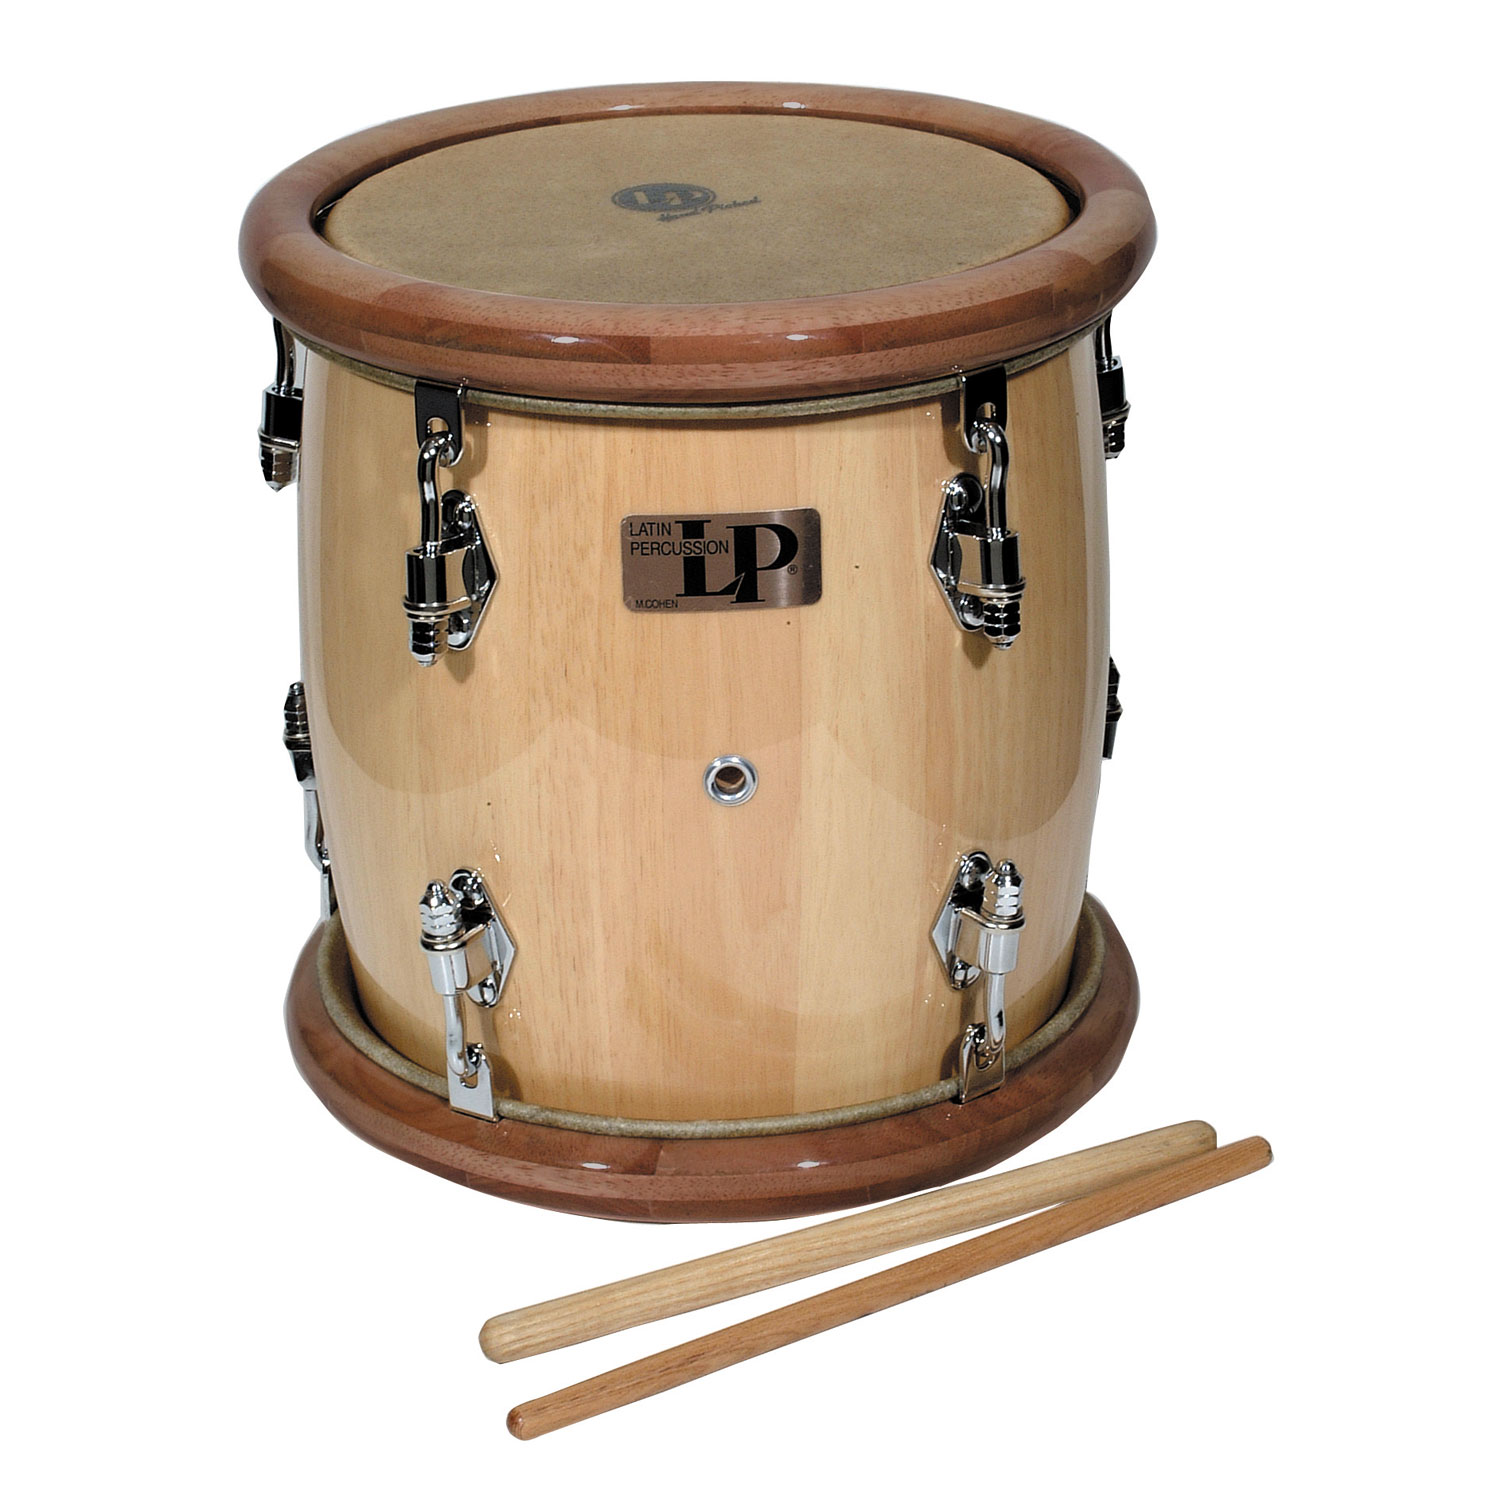 LP Tambora with Wood Rim